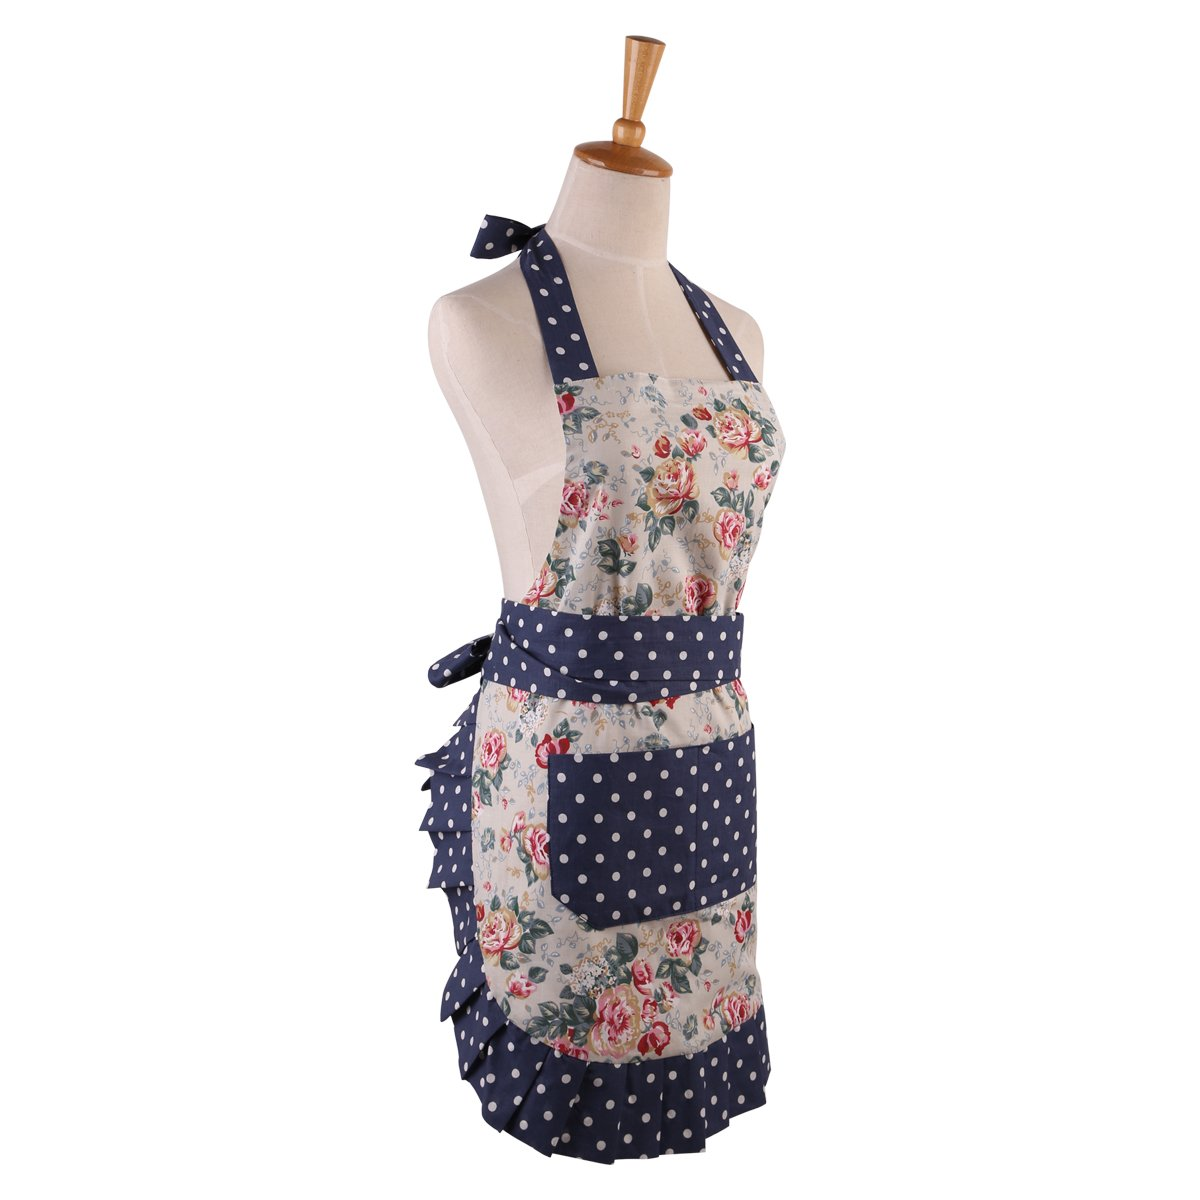 Angeka Cotton Fabric Flirty Women's Apron With Big Pocket In Front Used For Home Baking or Kitchen Cooking (White Style-1) 1